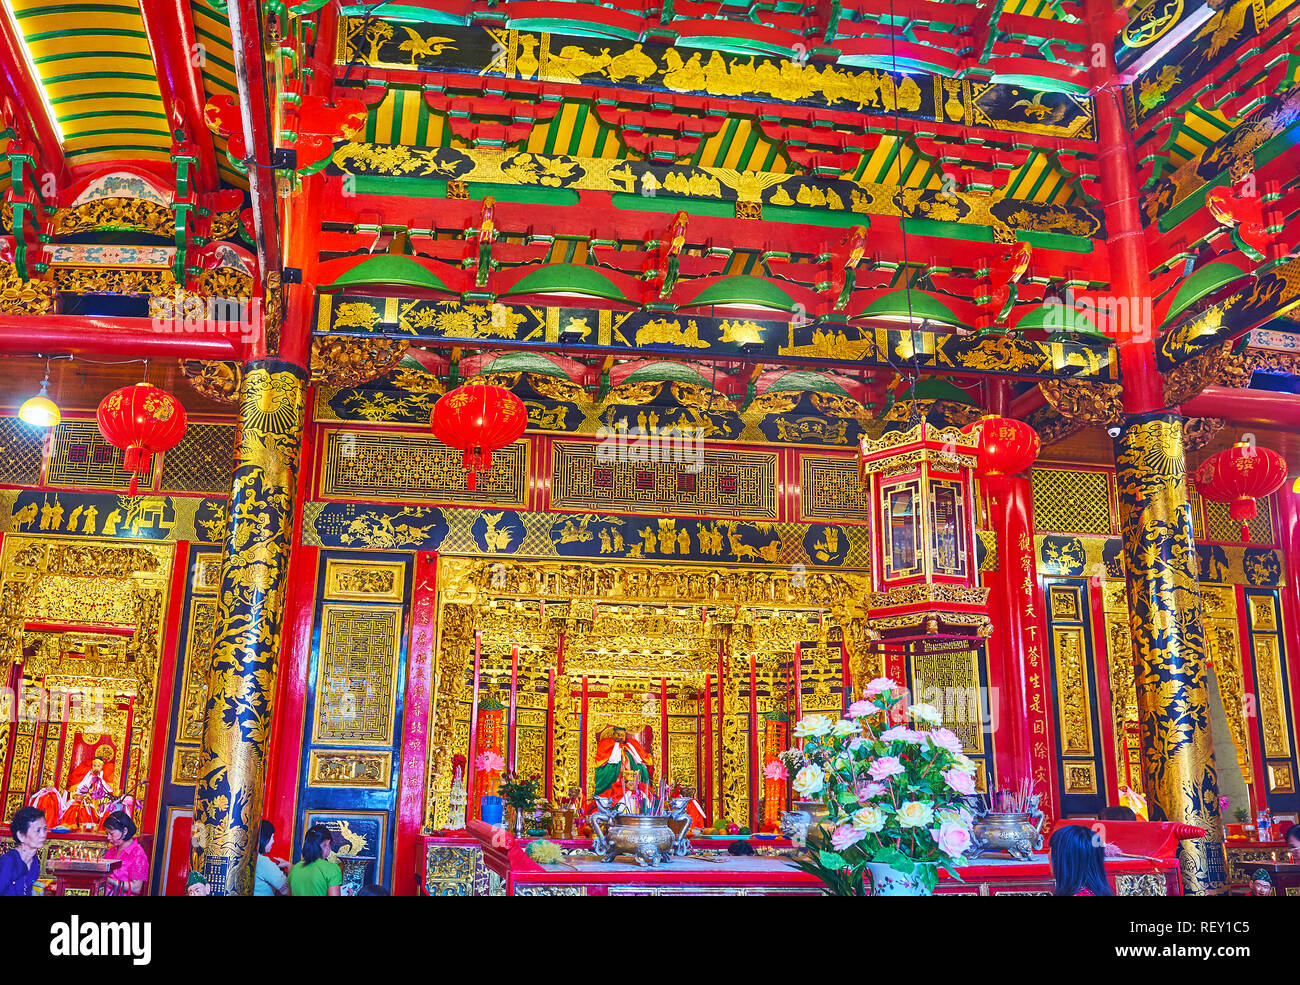 YANGON, MYANMAR - FEBRUARY 17, 2018: Interior of Kheng Hock Keong (Qingfu) Temple with traditional Chinese patterns and fine wooden carvings, on Febru - Stock Image